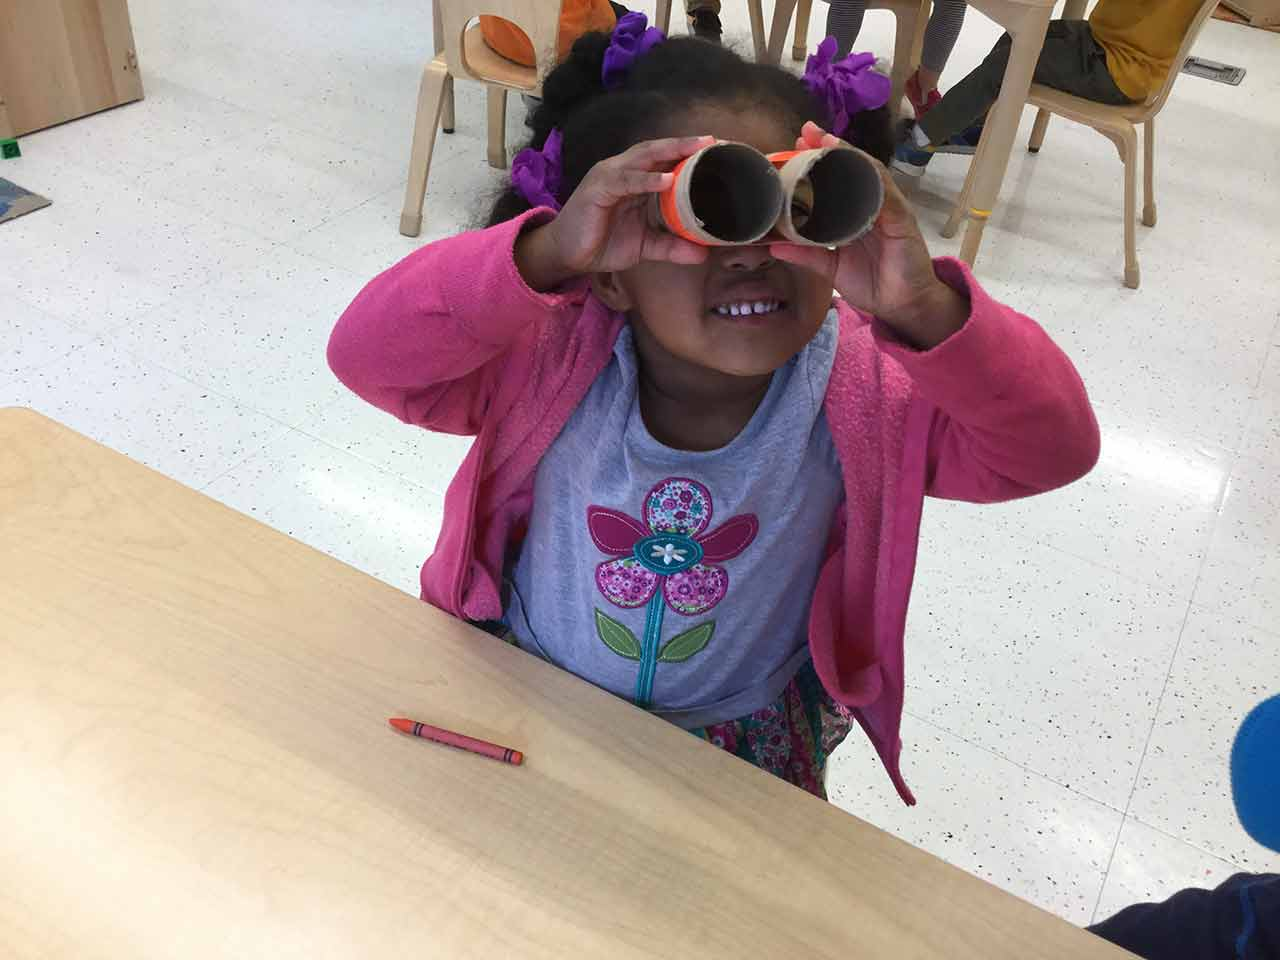 Child looking through a set of binoculars made of paper rolls